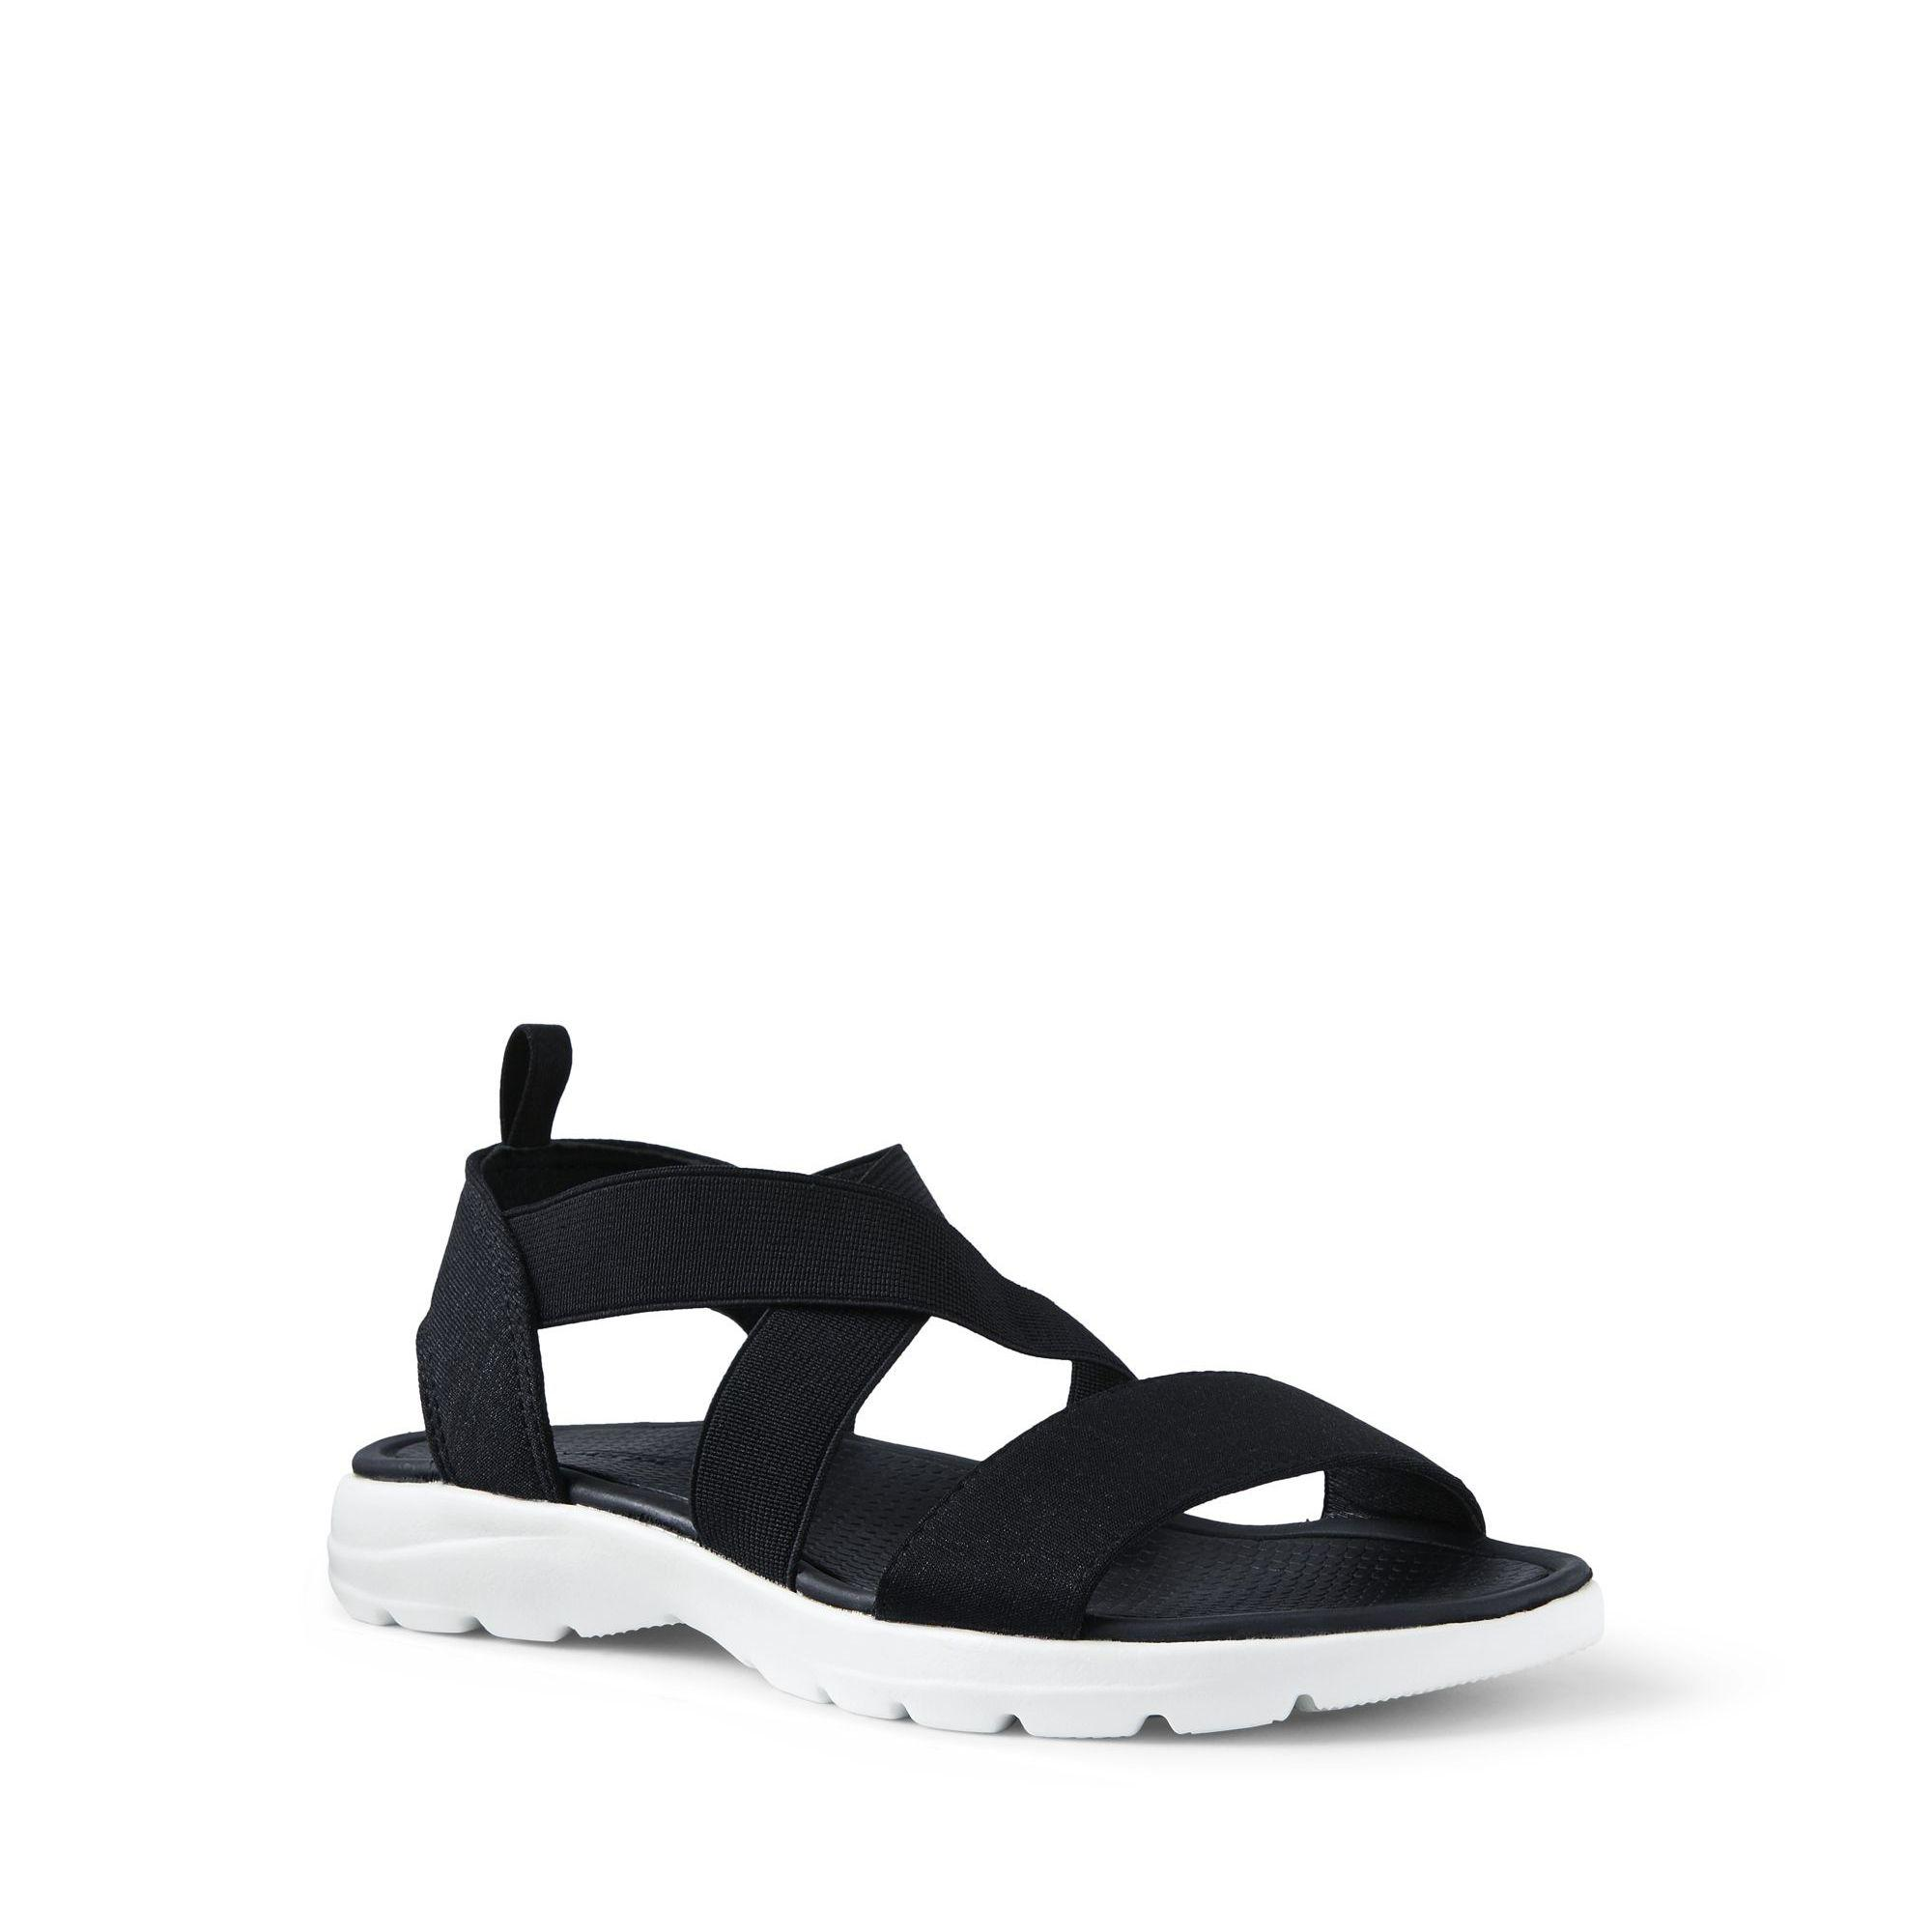 Grey alpargata lightweight summer sandals latest collections sale online clearance sneakernews Cheapest sale online buy cheap order outlet tumblr EY6Cu7y5x